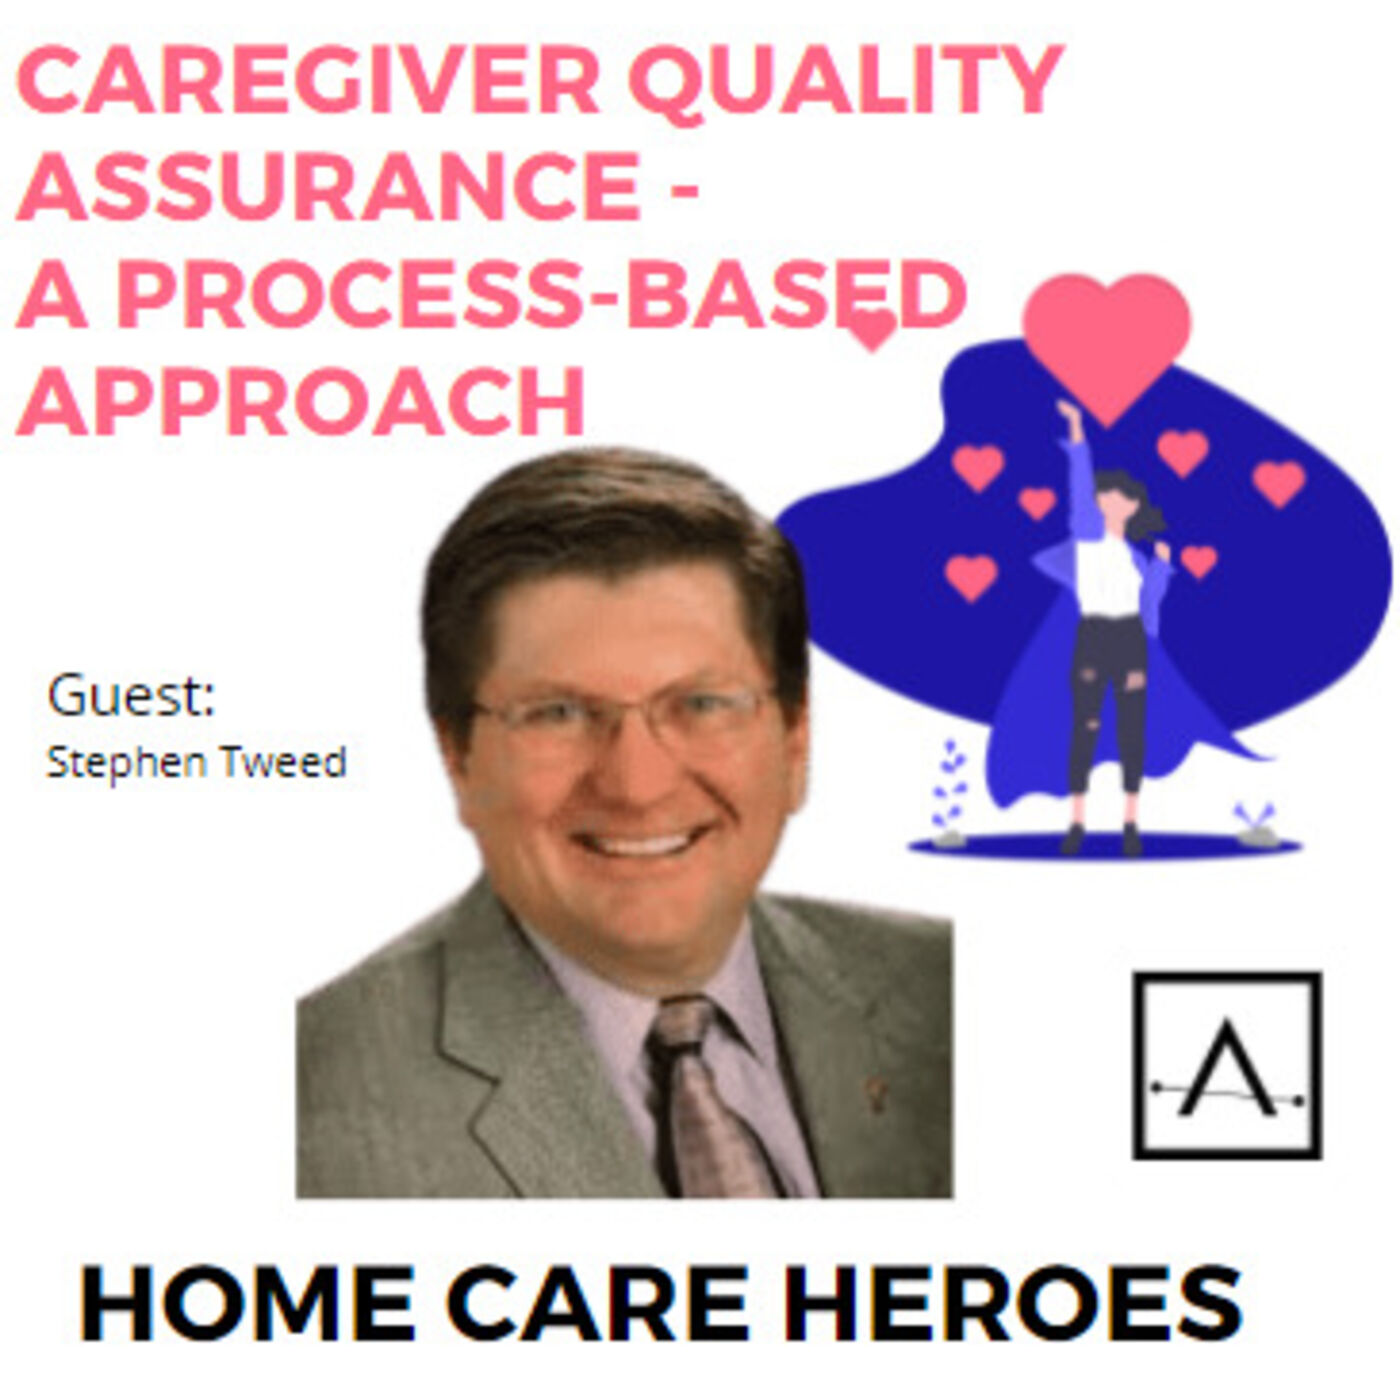 Caregiver Quality Assurance - A Process-Based Approach (with Stephen Tweed)